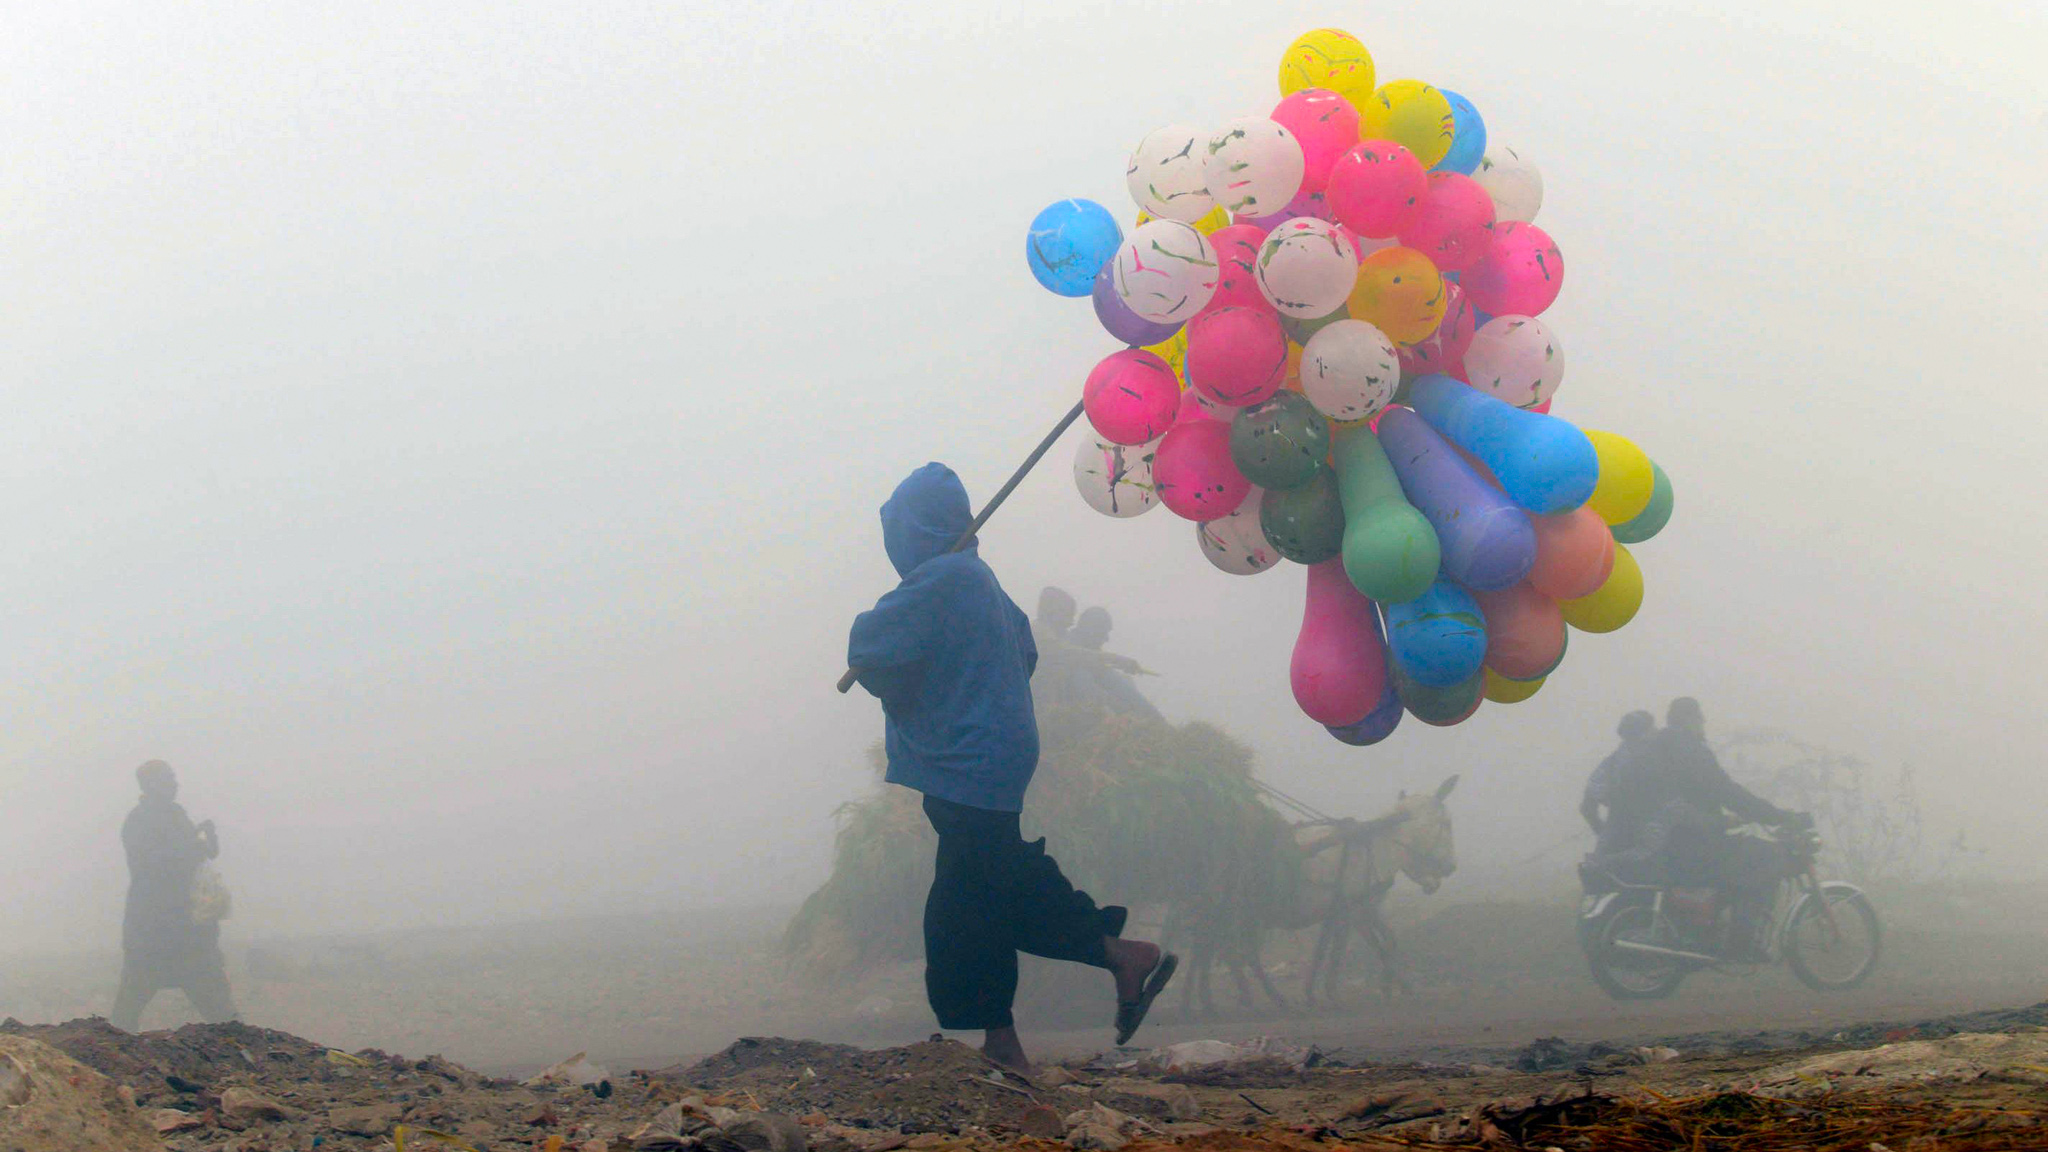 A Pakistani balloon vendor walks through...A Pakistani balloon vendor walks through a cold and foggy morning in Lahore on December 17, 2013. Ongoing foggy weather in Punjab and other parts of the country has badly affected flight and rail schedules. TOPSHOTS  AFP PHOTO/ARIF ALIArif Ali/AFP/Getty Images